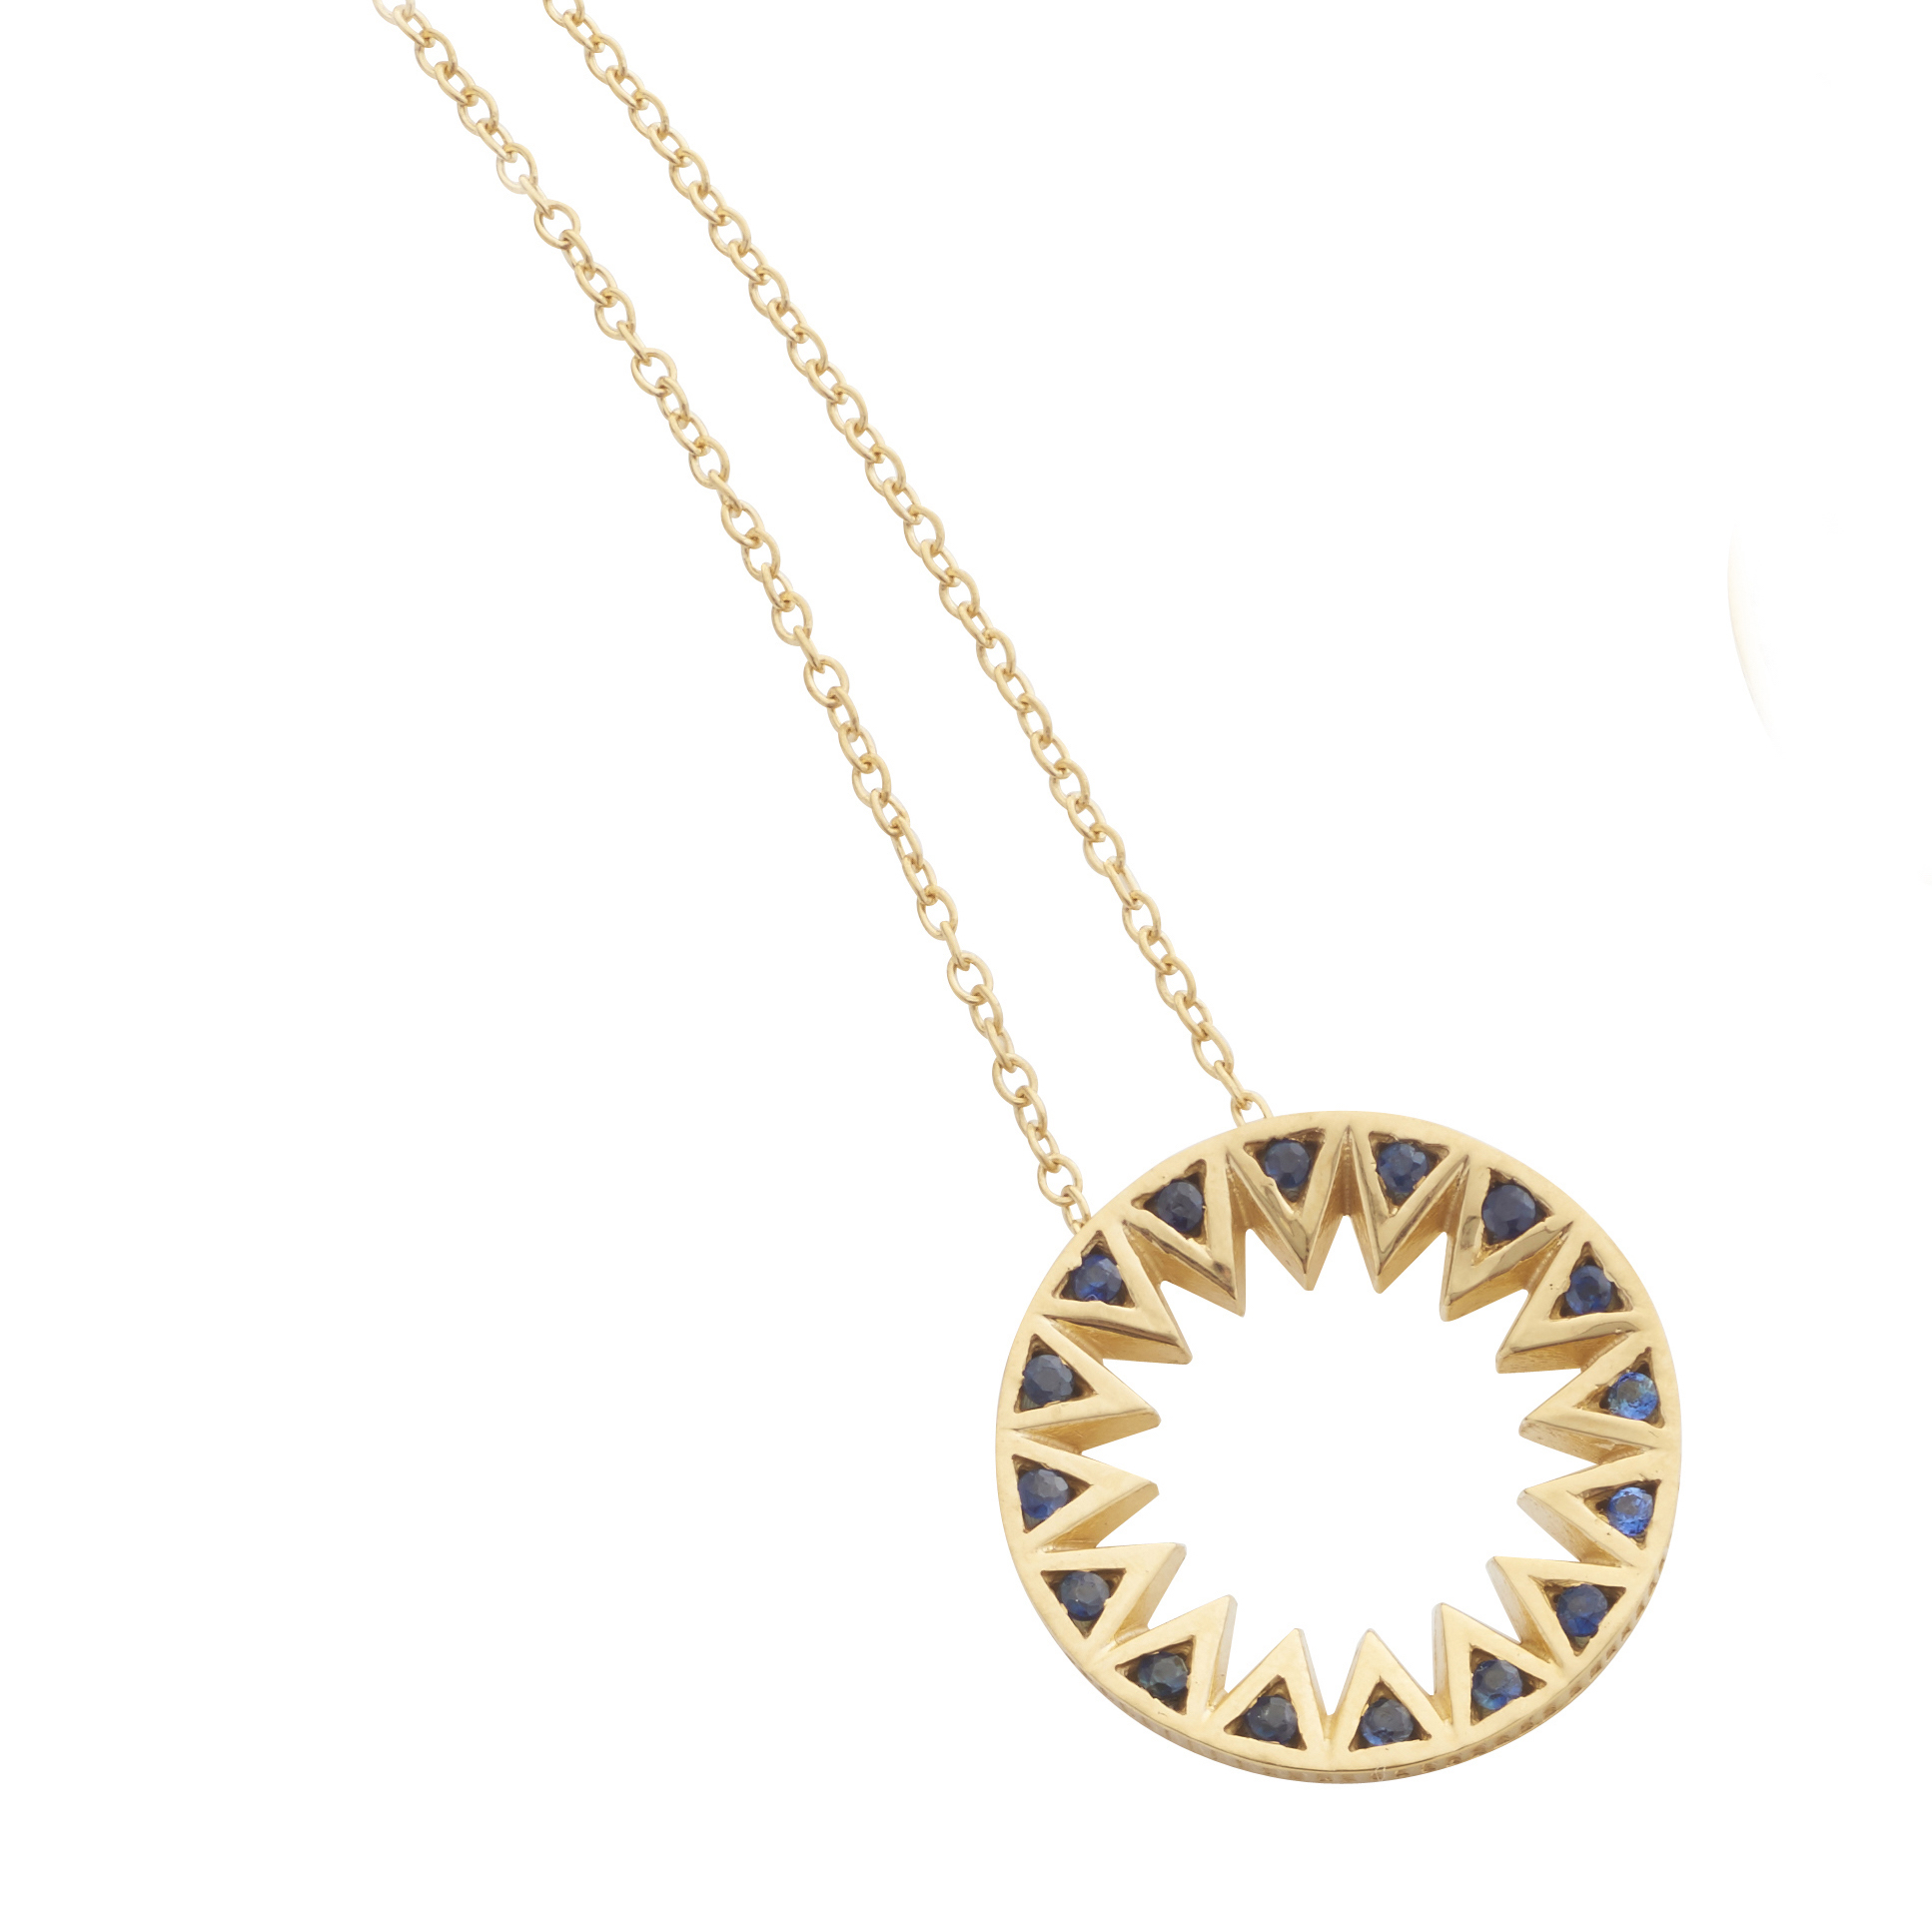 Taxila Pendant by Flora Bhattachary RRP £470 Image